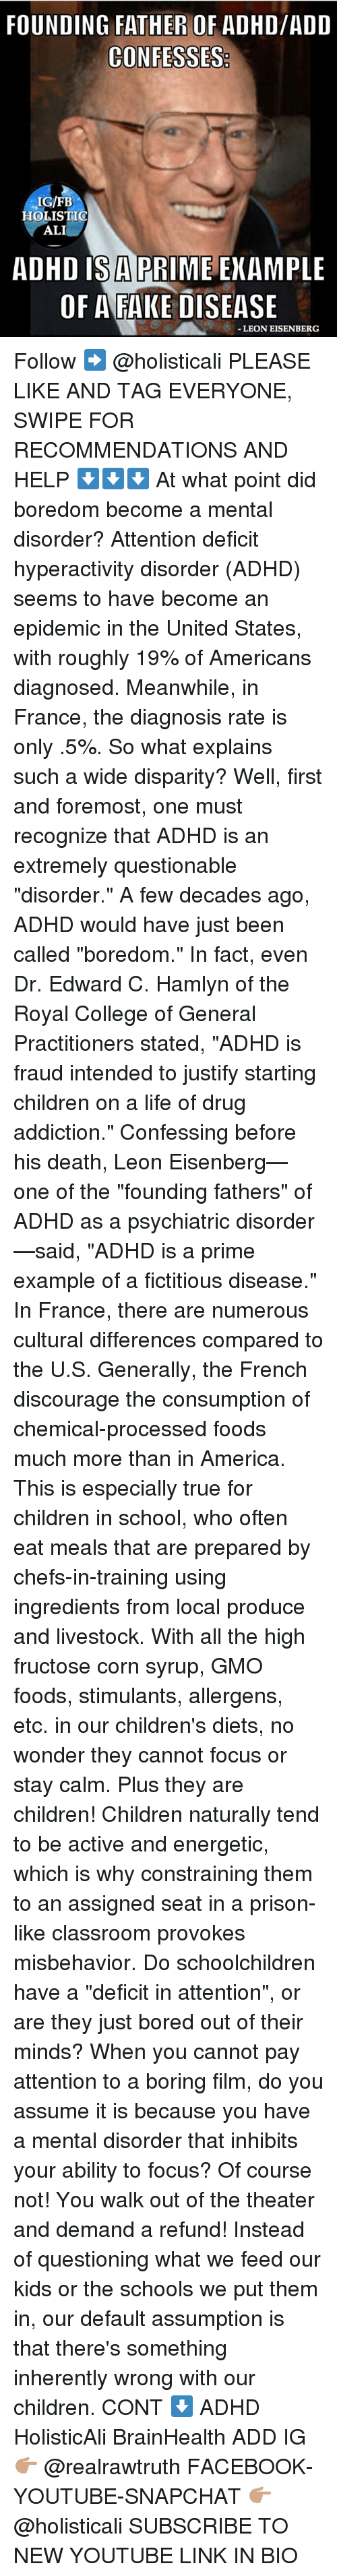 """discourage: FOUNDING FATHER OF ADHD/ADD  IG/FB  HOLISTIO  ALI  ADHD IS A PRIME ENAMPLE  OF AFAKE DISEASE  LEON EISENBERG Follow ➡️ @holisticali PLEASE LIKE AND TAG EVERYONE, SWIPE FOR RECOMMENDATIONS AND HELP ⬇️⬇️⬇️ At what point did boredom become a mental disorder? Attention deficit hyperactivity disorder (ADHD) seems to have become an epidemic in the United States, with roughly 19% of Americans diagnosed. Meanwhile, in France, the diagnosis rate is only .5%. So what explains such a wide disparity? Well, first and foremost, one must recognize that ADHD is an extremely questionable """"disorder."""" A few decades ago, ADHD would have just been called """"boredom."""" In fact, even Dr. Edward C. Hamlyn of the Royal College of General Practitioners stated, """"ADHD is fraud intended to justify starting children on a life of drug addiction."""" Confessing before his death, Leon Eisenberg—one of the """"founding fathers"""" of ADHD as a psychiatric disorder—said, """"ADHD is a prime example of a fictitious disease."""" In France, there are numerous cultural differences compared to the U.S. Generally, the French discourage the consumption of chemical-processed foods much more than in America. This is especially true for children in school, who often eat meals that are prepared by chefs-in-training using ingredients from local produce and livestock. With all the high fructose corn syrup, GMO foods, stimulants, allergens, etc. in our children's diets, no wonder they cannot focus or stay calm. Plus they are children! Children naturally tend to be active and energetic, which is why constraining them to an assigned seat in a prison-like classroom provokes misbehavior. Do schoolchildren have a """"deficit in attention"""", or are they just bored out of their minds? When you cannot pay attention to a boring film, do you assume it is because you have a mental disorder that inhibits your ability to focus? Of course not! You walk out of the theater and demand a refund! Instead of questioning what we feed our kids o"""